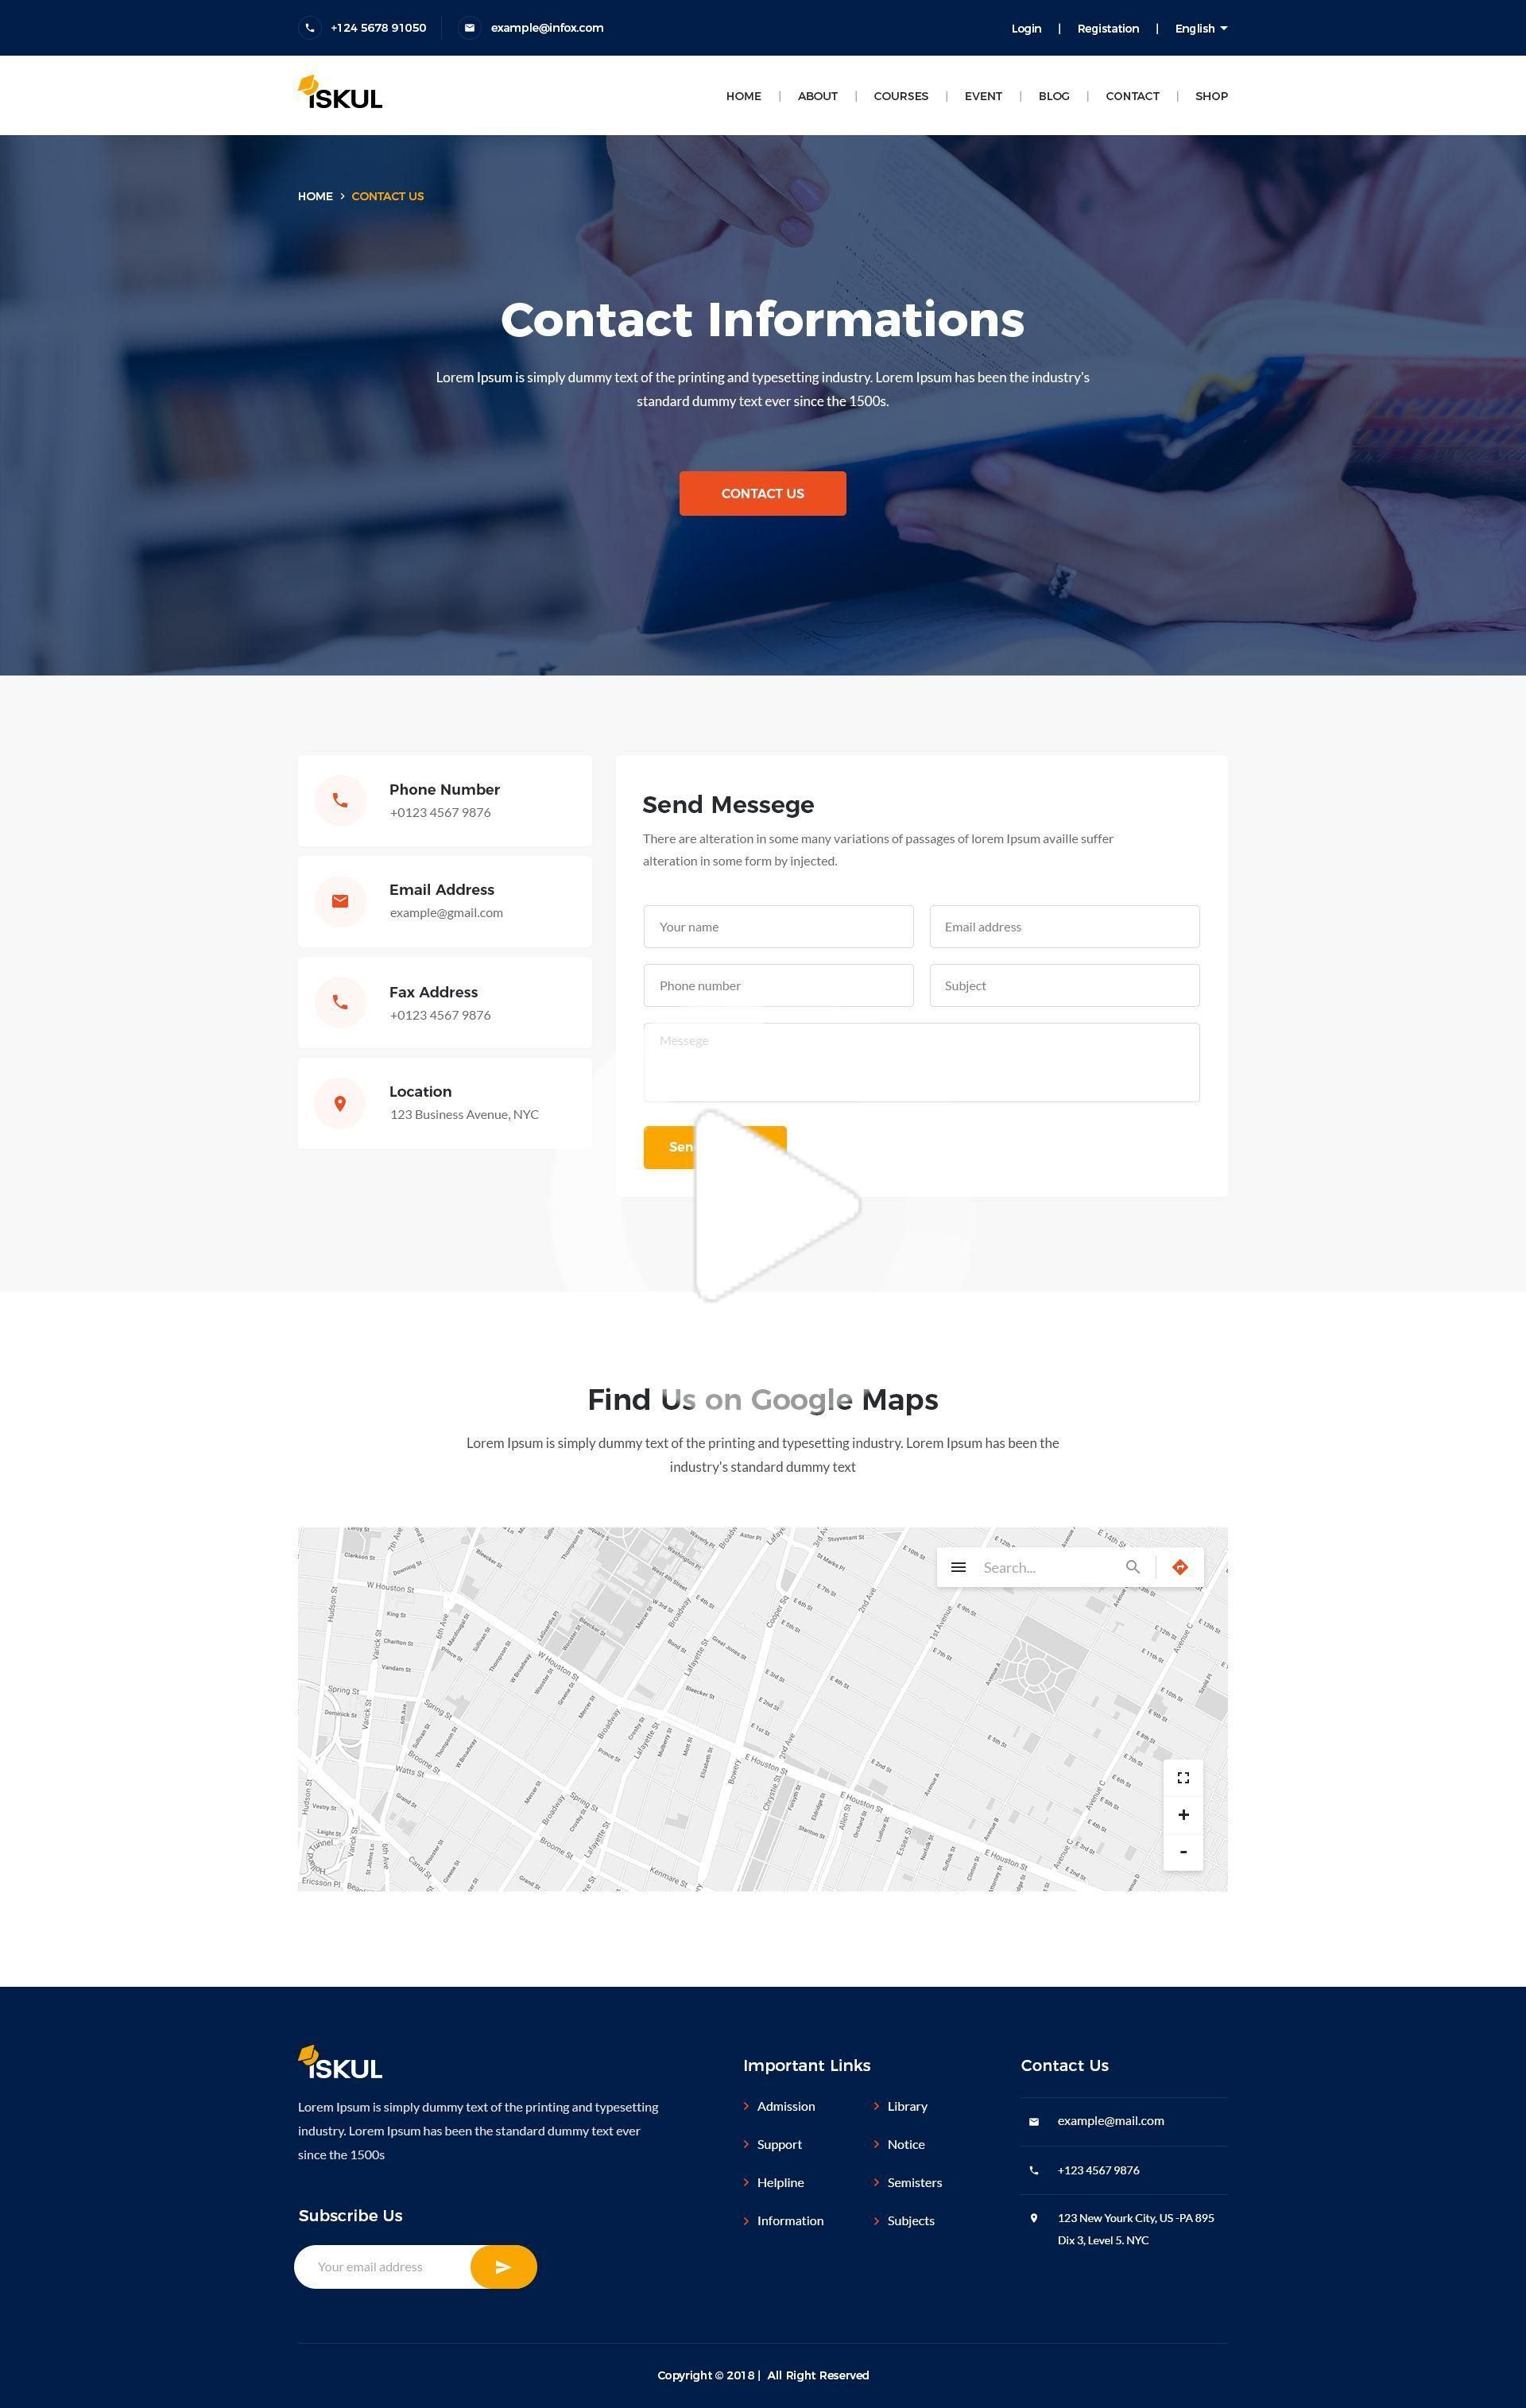 Contact Page 1 Google Maps Form Contact Detail In 2020 Web Design Inspiration Contact Us Page Design Web Design